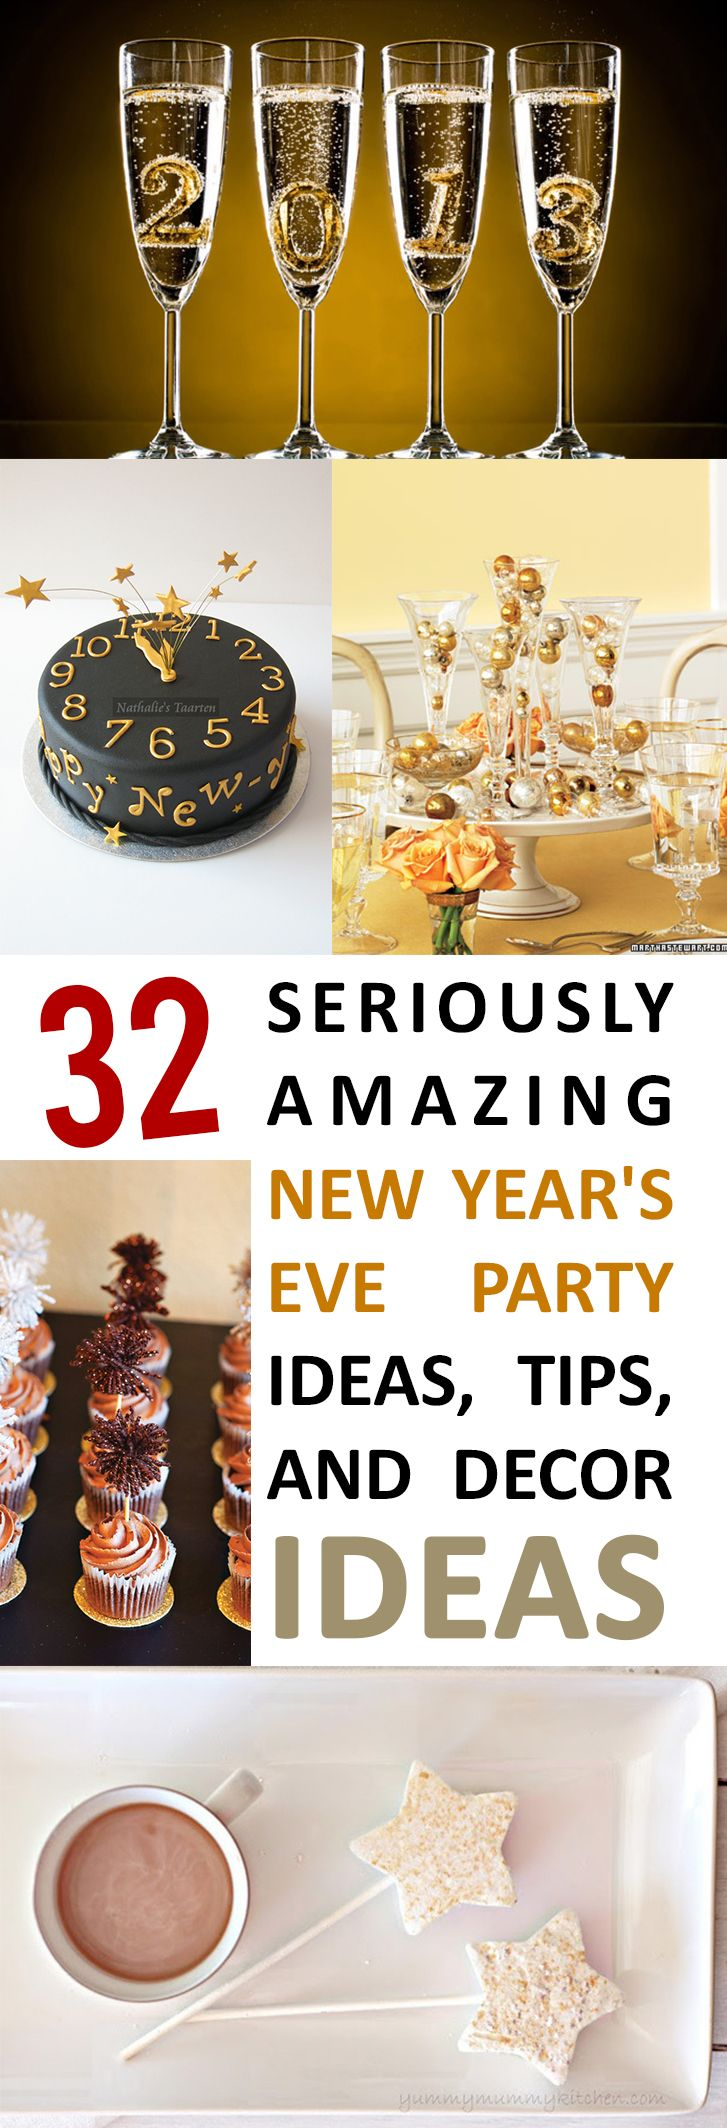 84 Best Party Ideas Images On Pinterest Parties Party Ideas And